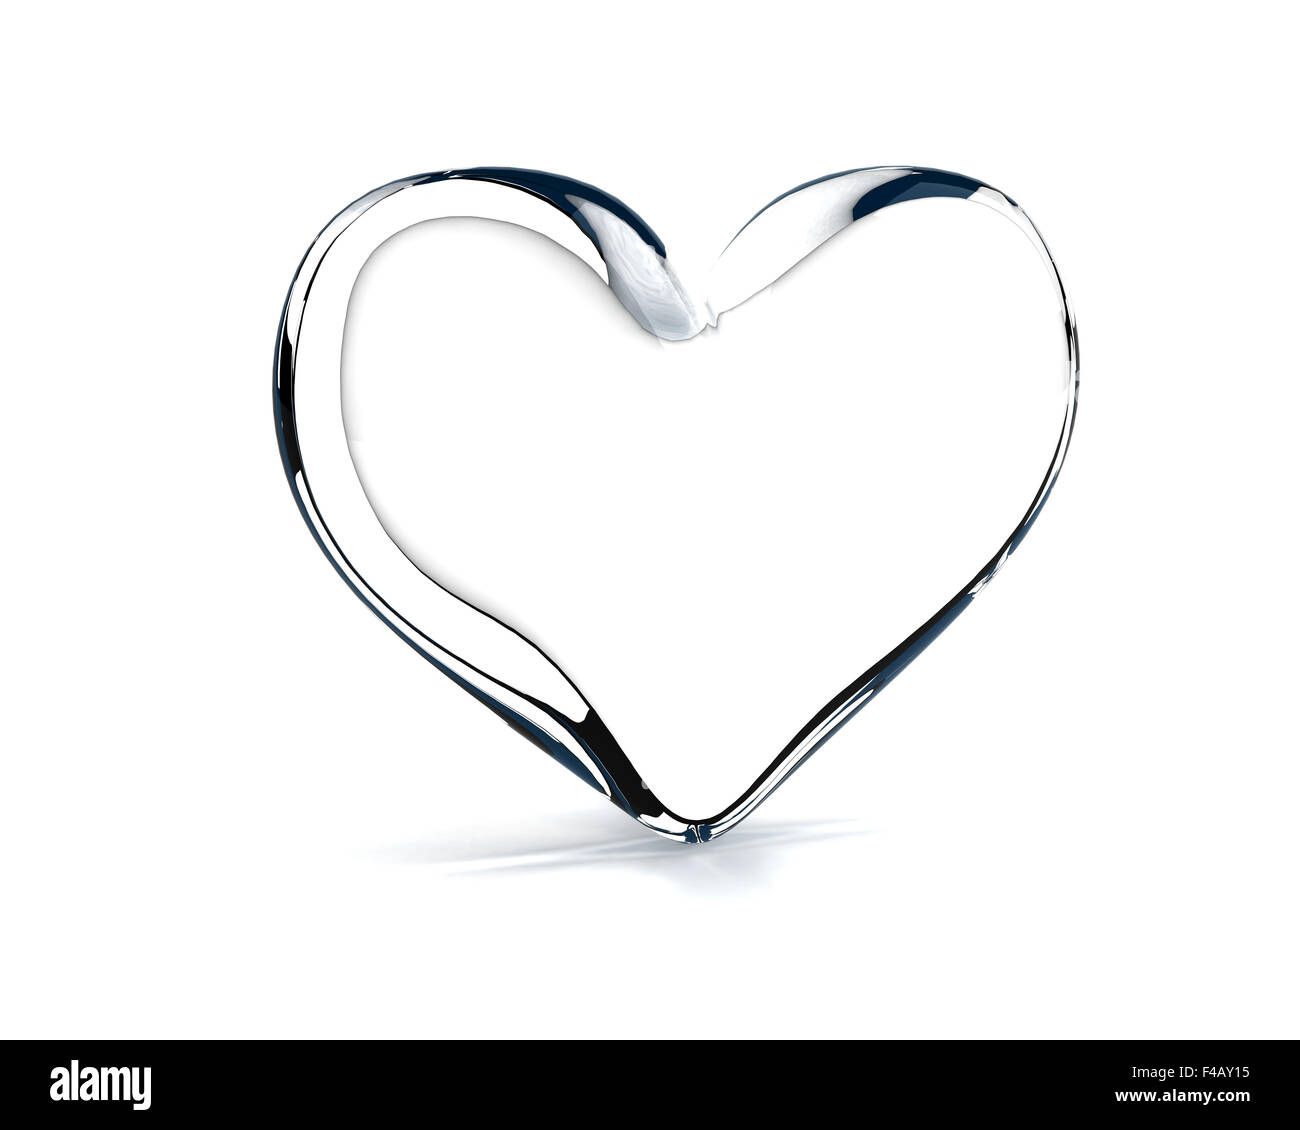 glass heart on the white background - Stock Image